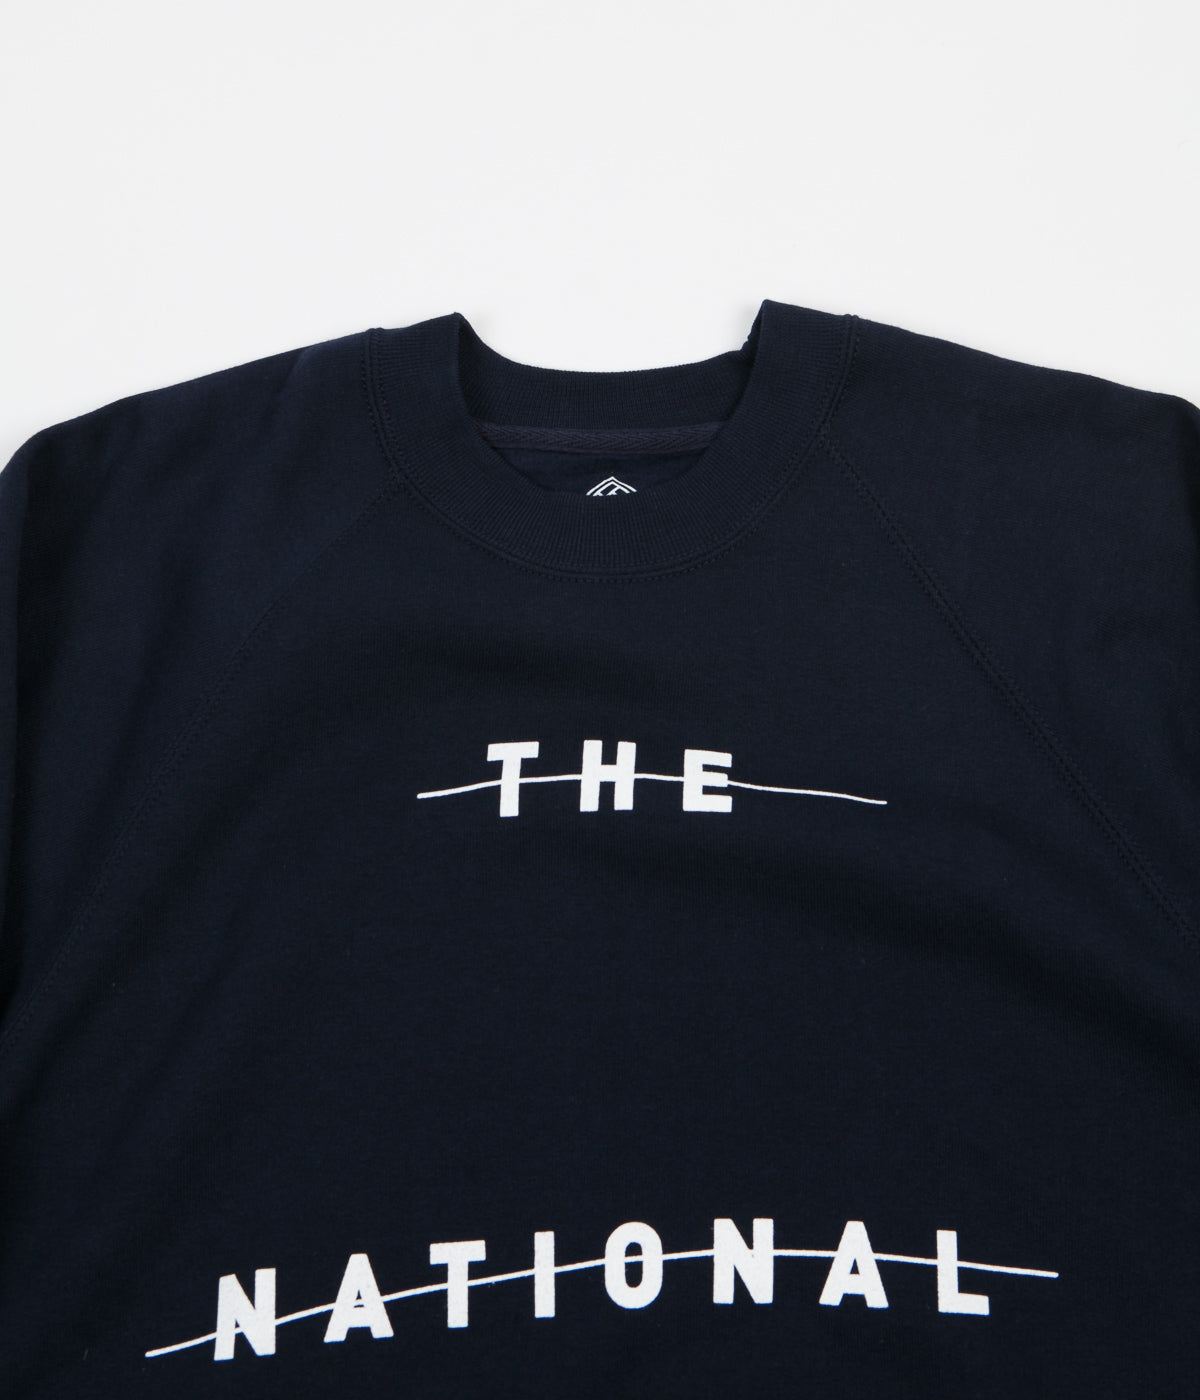 The National Skateboard Company Redacted Crewneck Sweatshirt - Navy